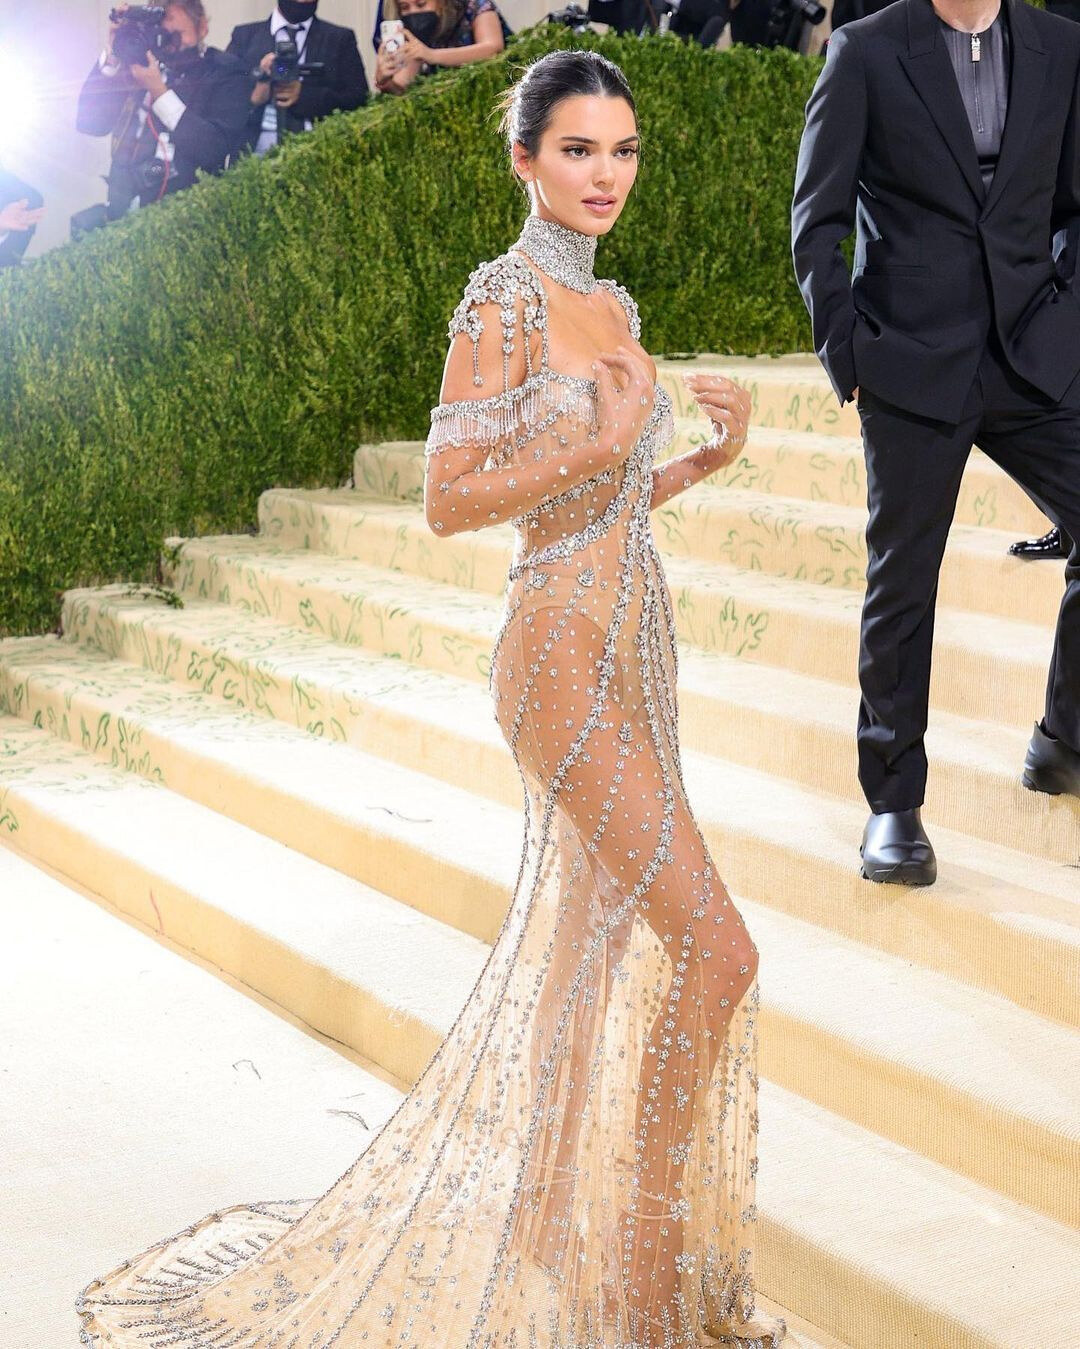 Kendall Jenner Givenchy Met Gala 2021